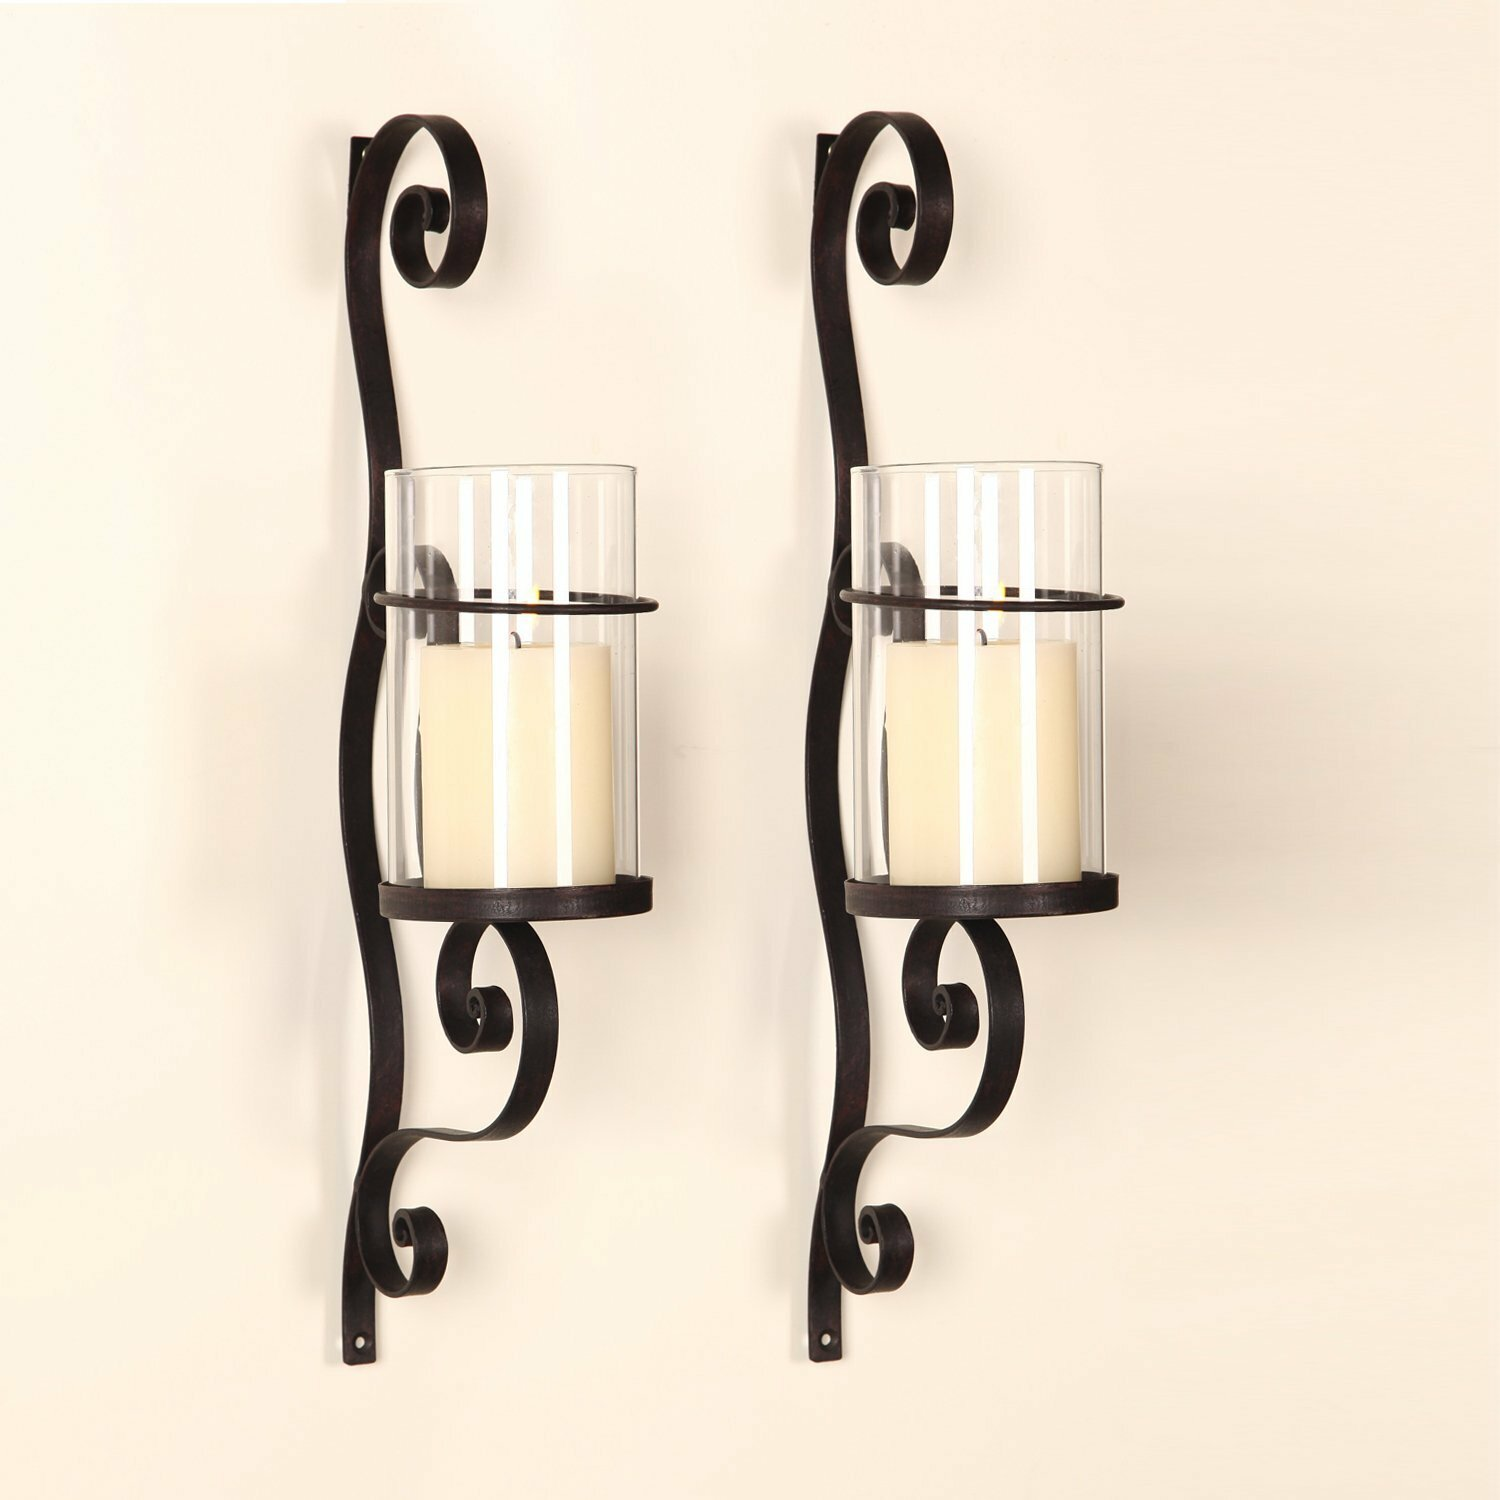 AdecoTrading Iron Wall Sconce Candle Holder & Reviews Wayfair